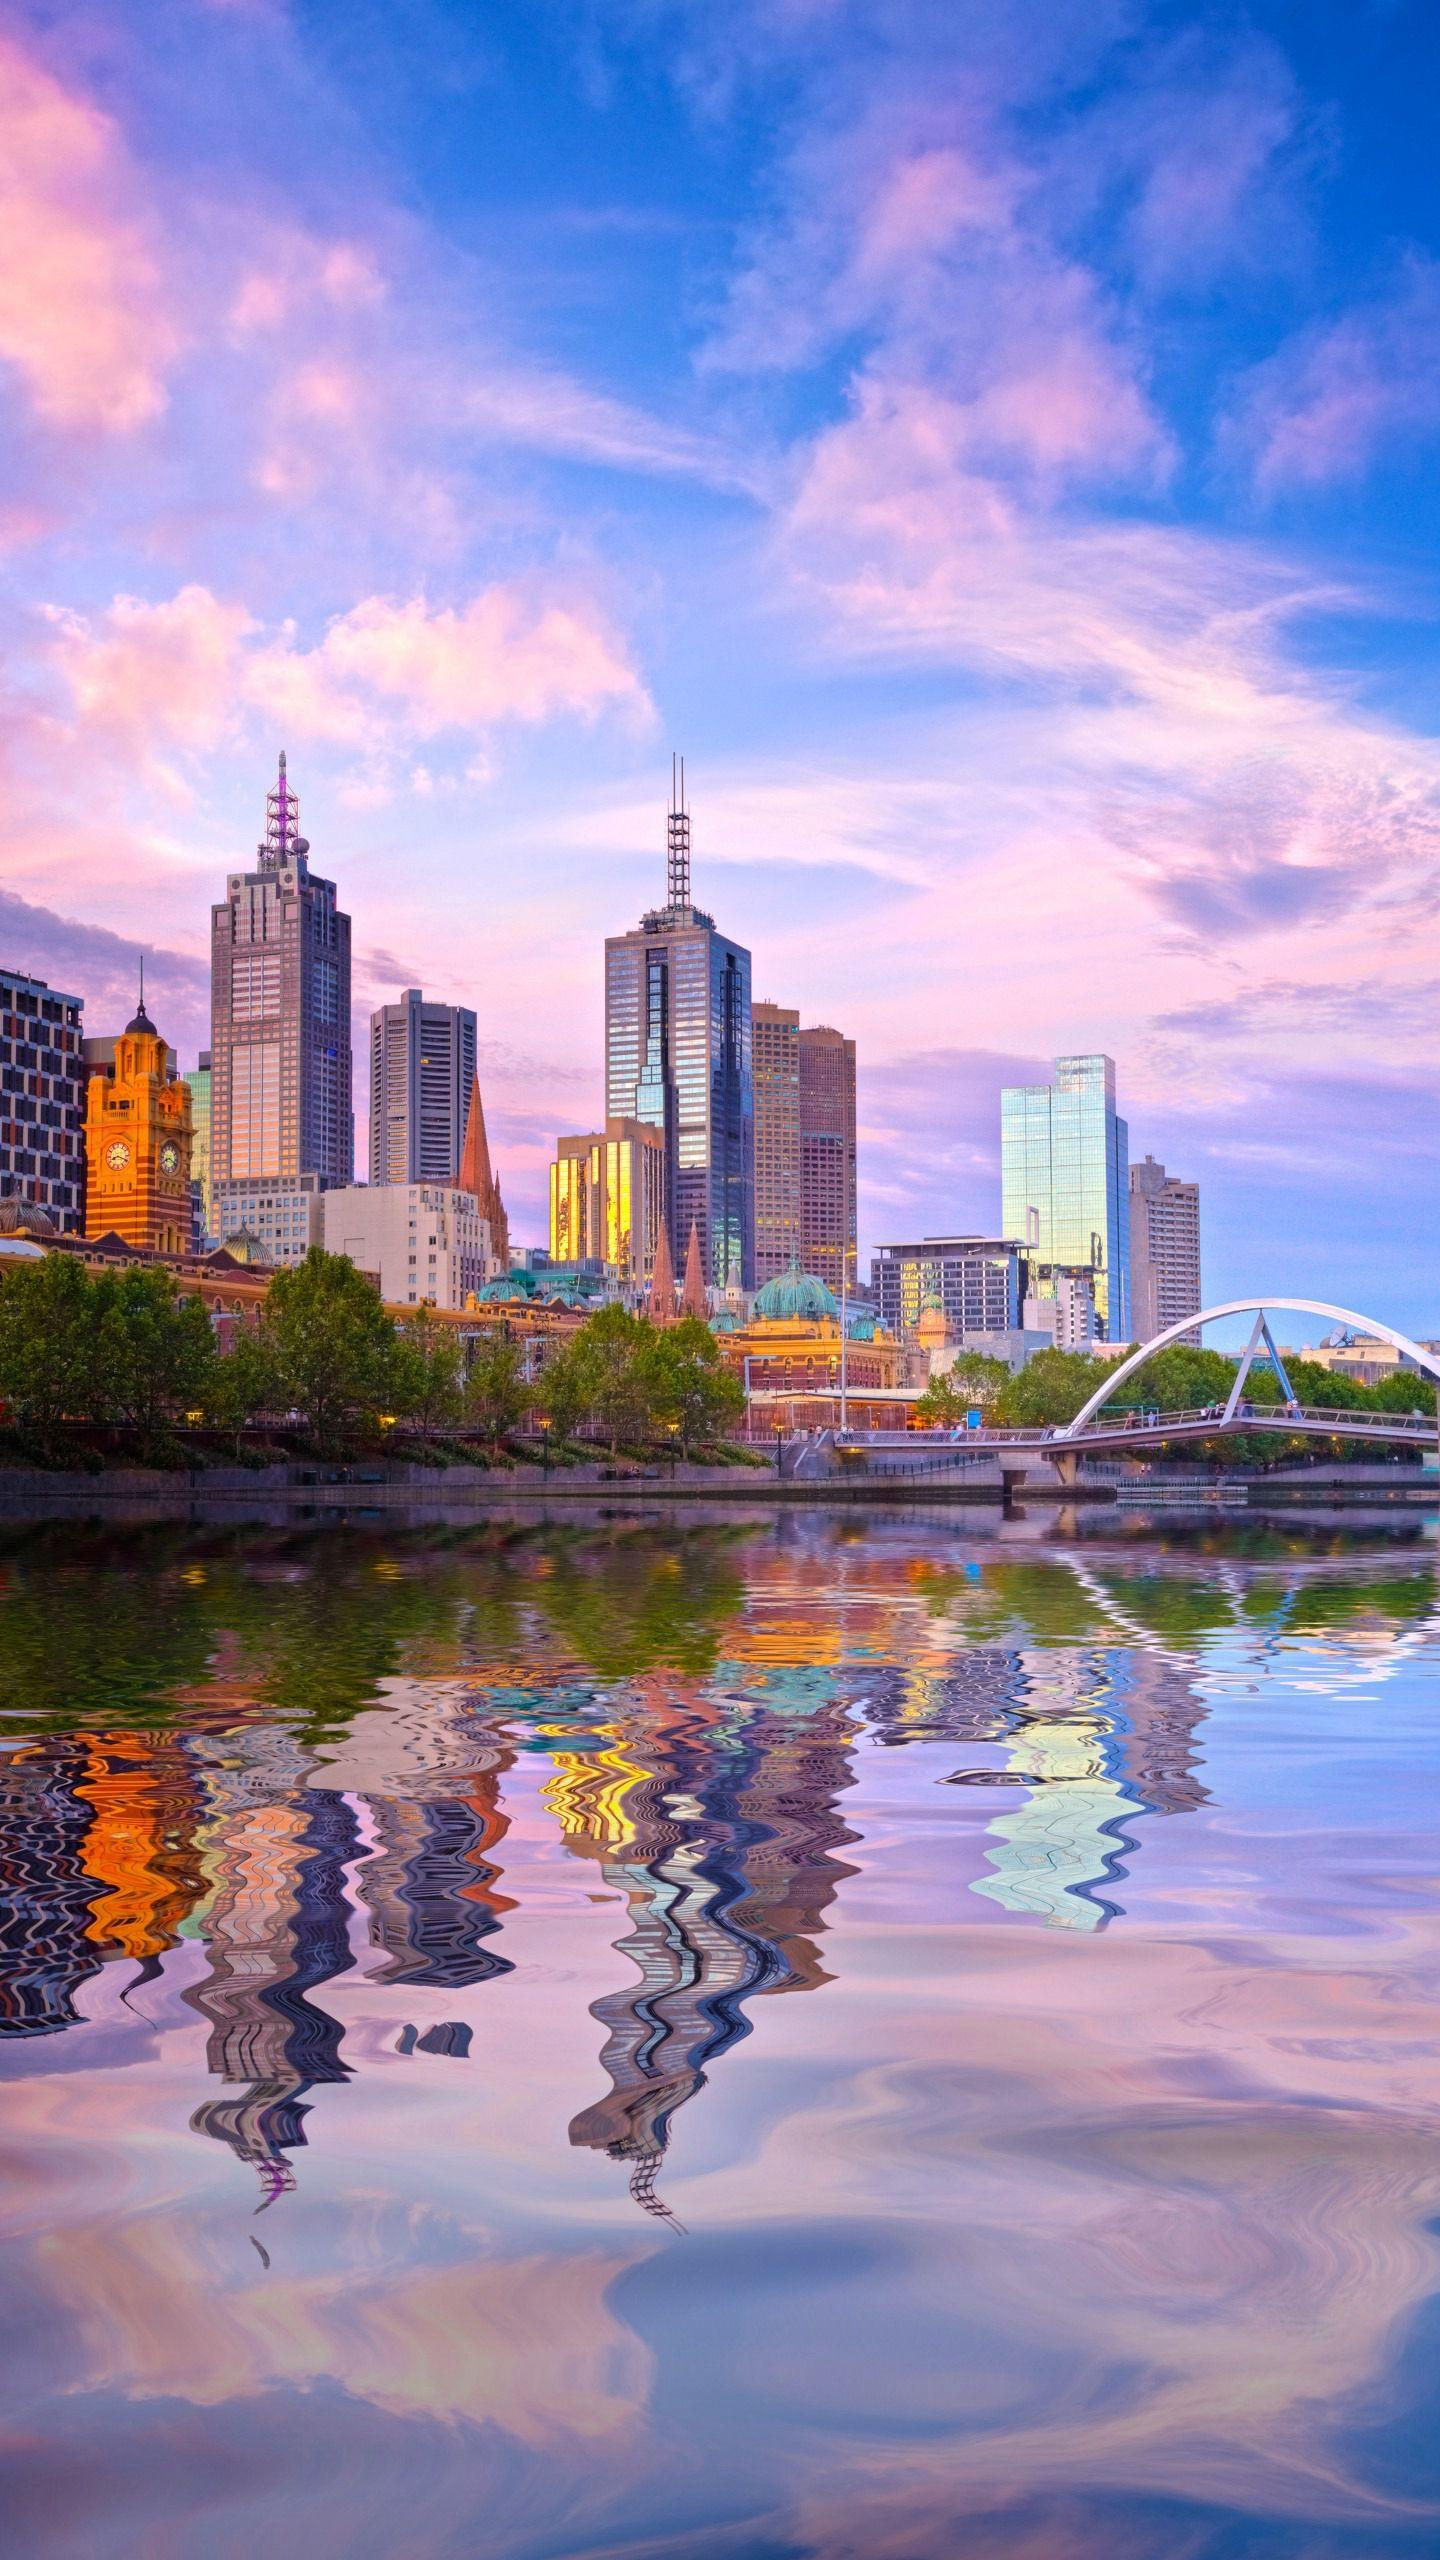 Go shopping in Melbourne. Traveling abroad, the most happy thing is to play and buy, so that your travel is more enjoyable.